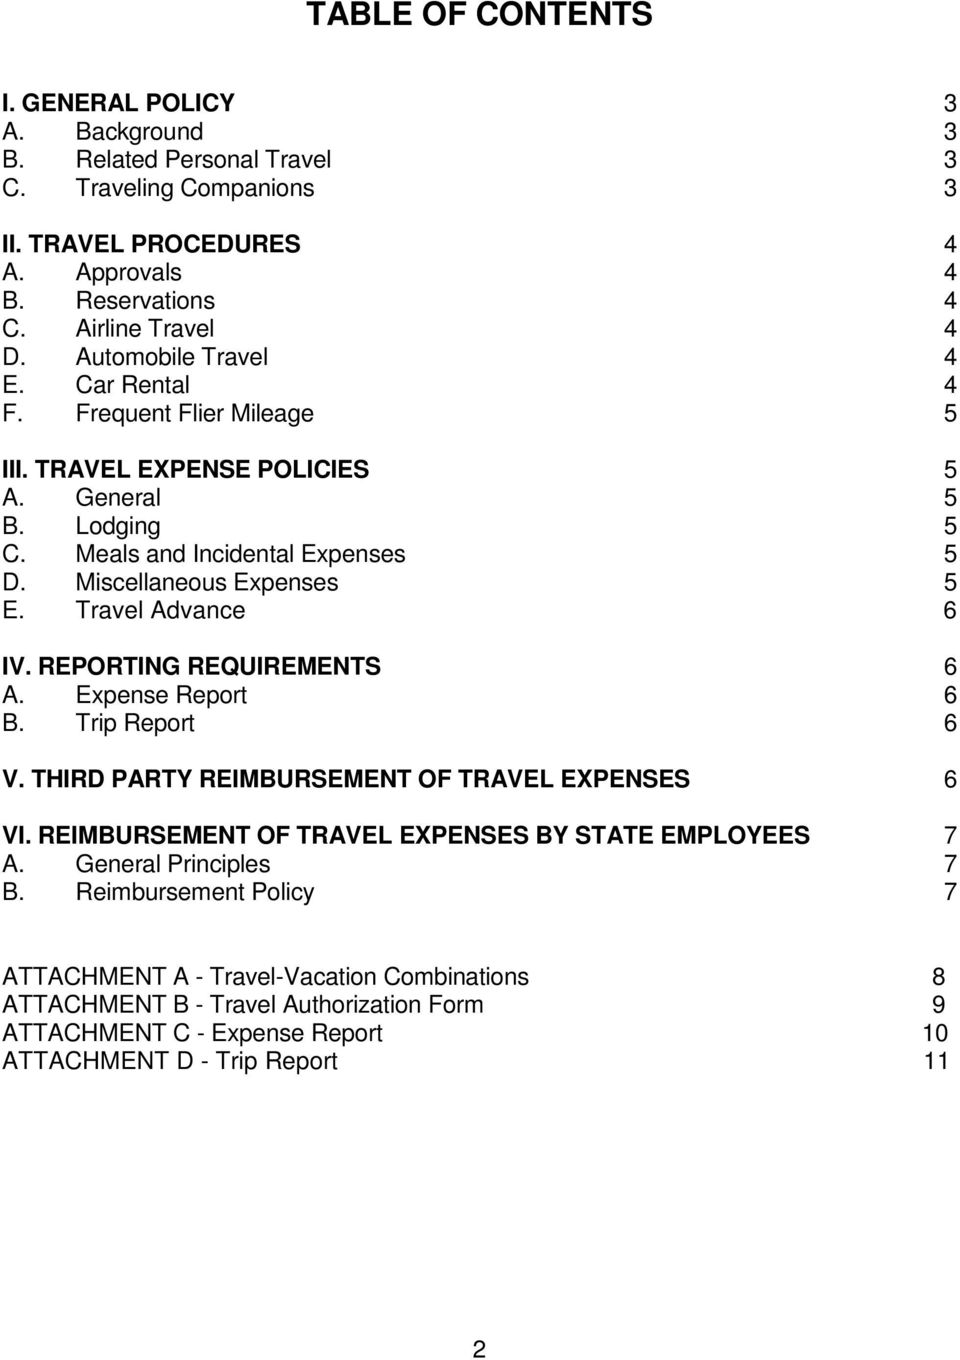 Travel Advance 6 IV. REPORTING REQUIREMENTS 6 A. Expense Report 6 B. Trip Report 6 V. THIRD PARTY REIMBURSEMENT OF TRAVEL EXPENSES 6 VI. REIMBURSEMENT OF TRAVEL EXPENSES BY STATE EMPLOYEES 7 A.